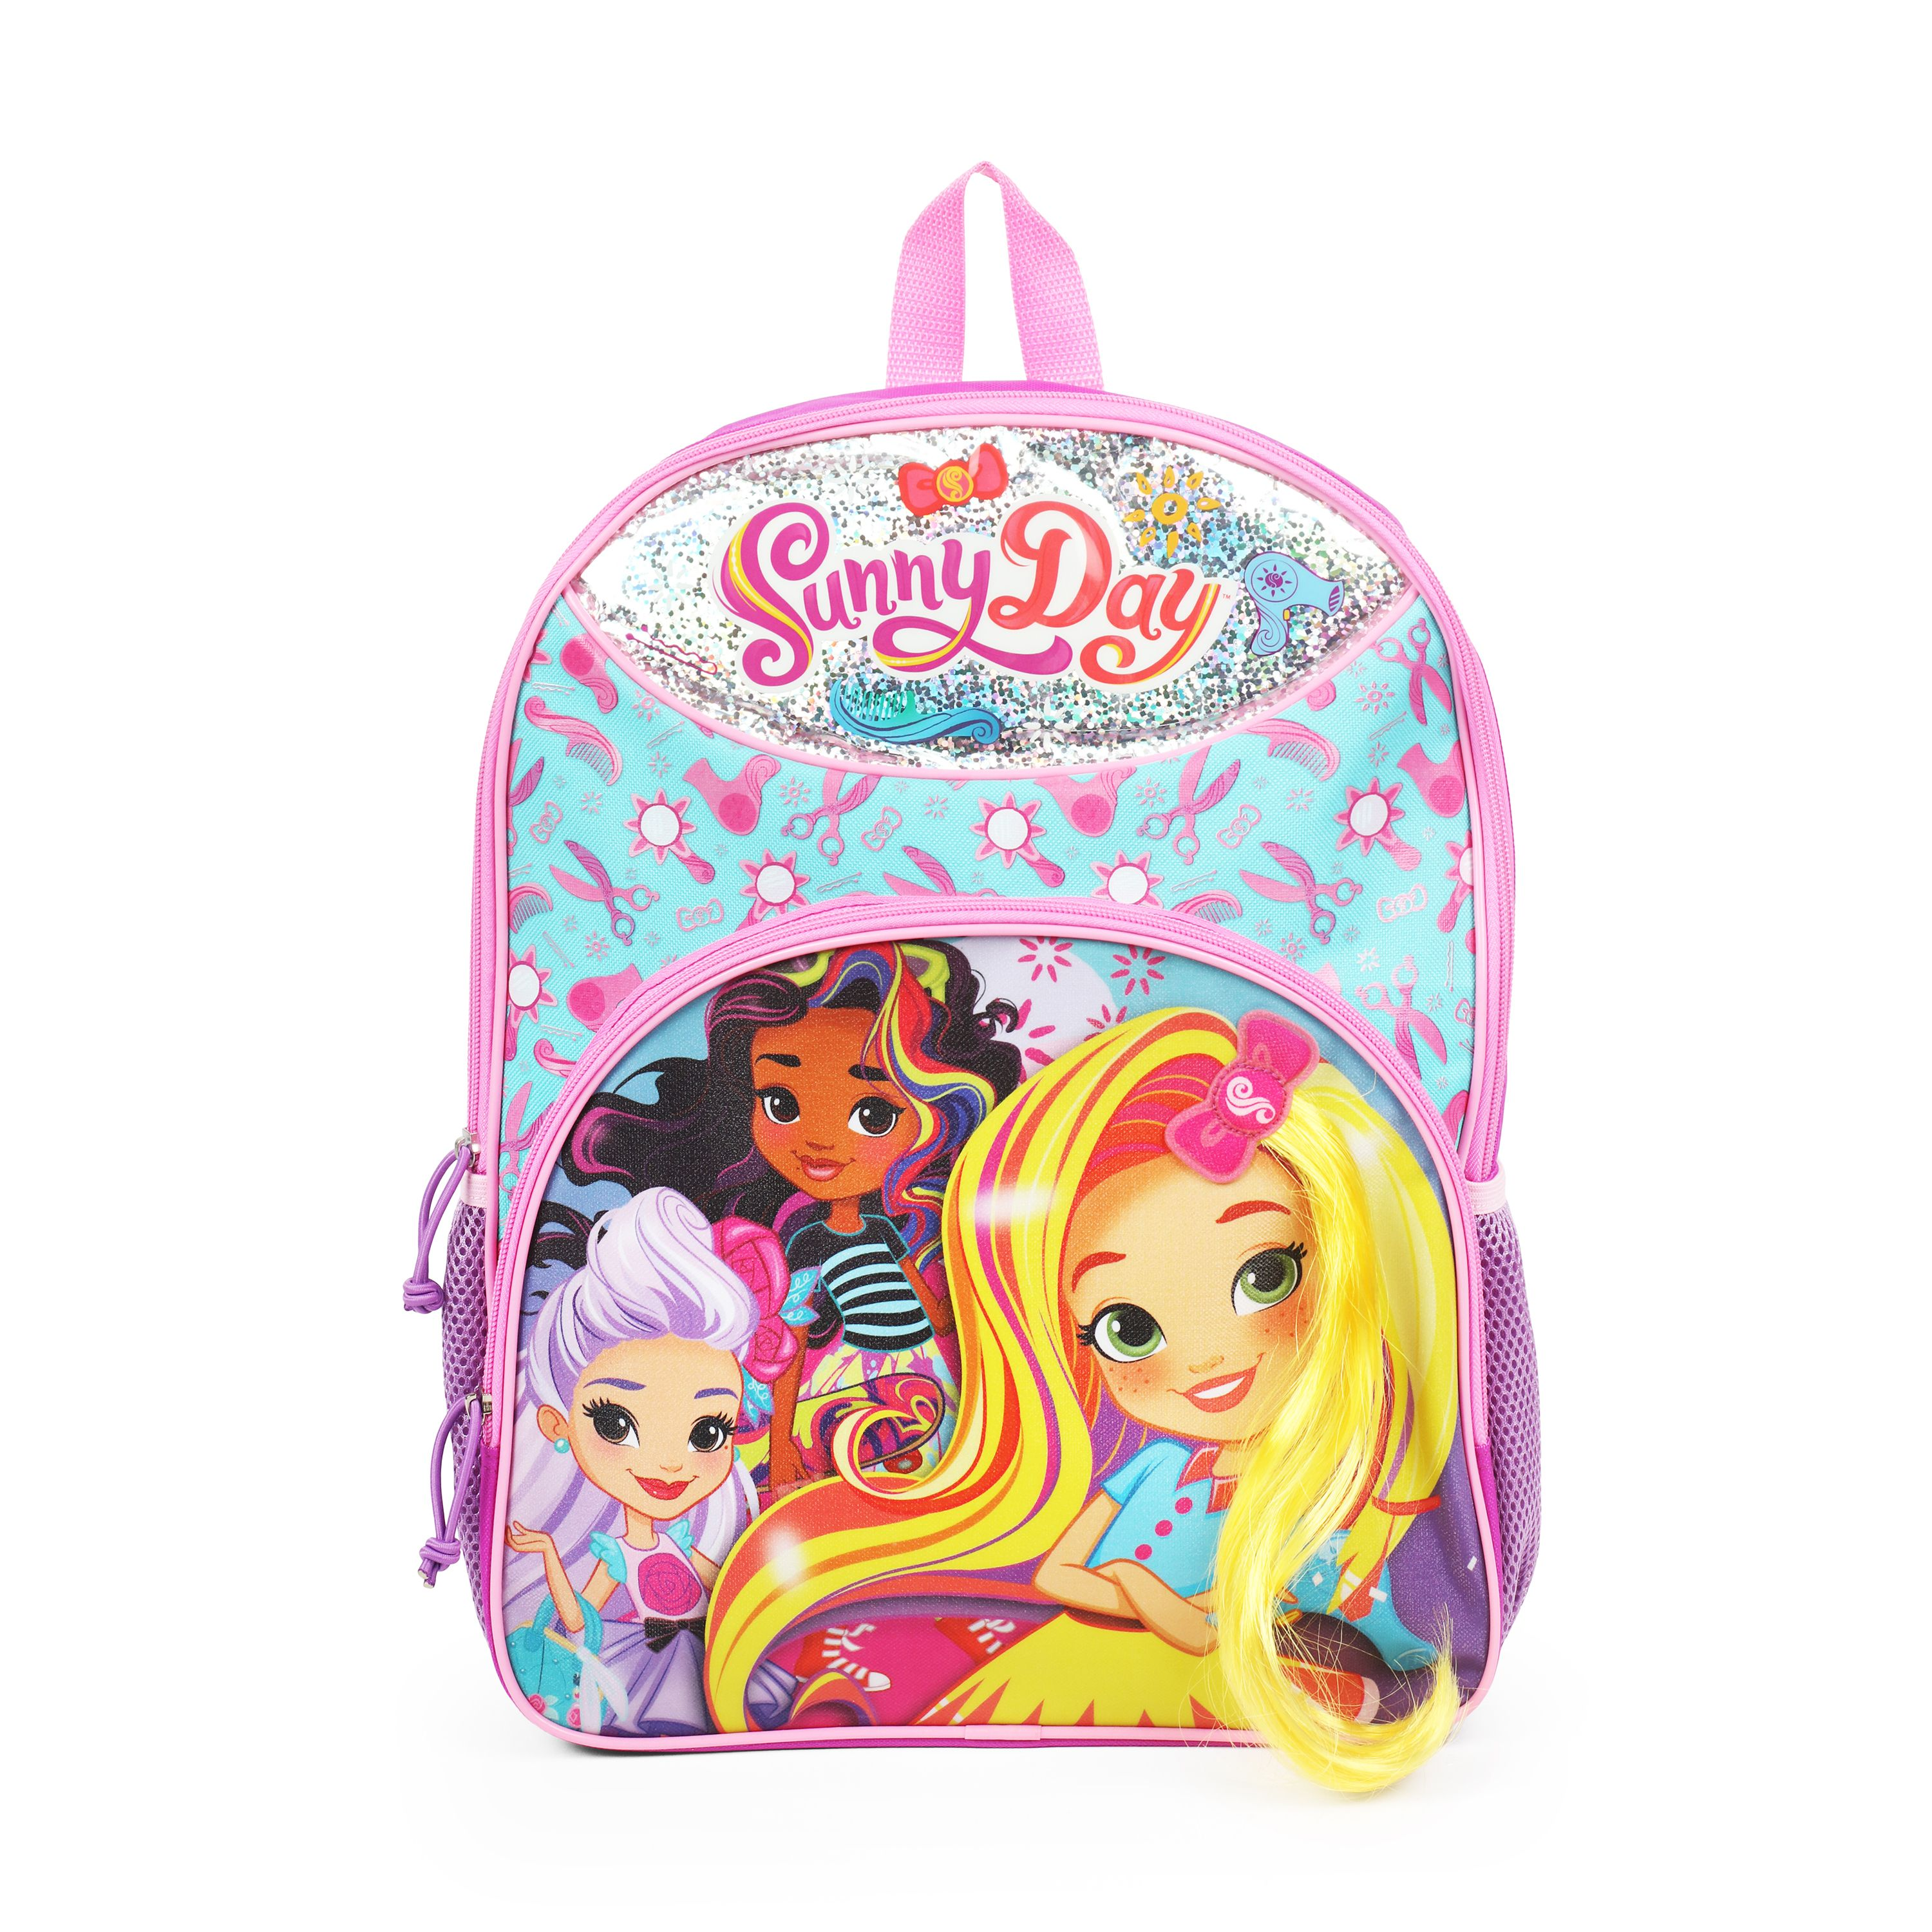 Sunny Day Backpack W/ Hair